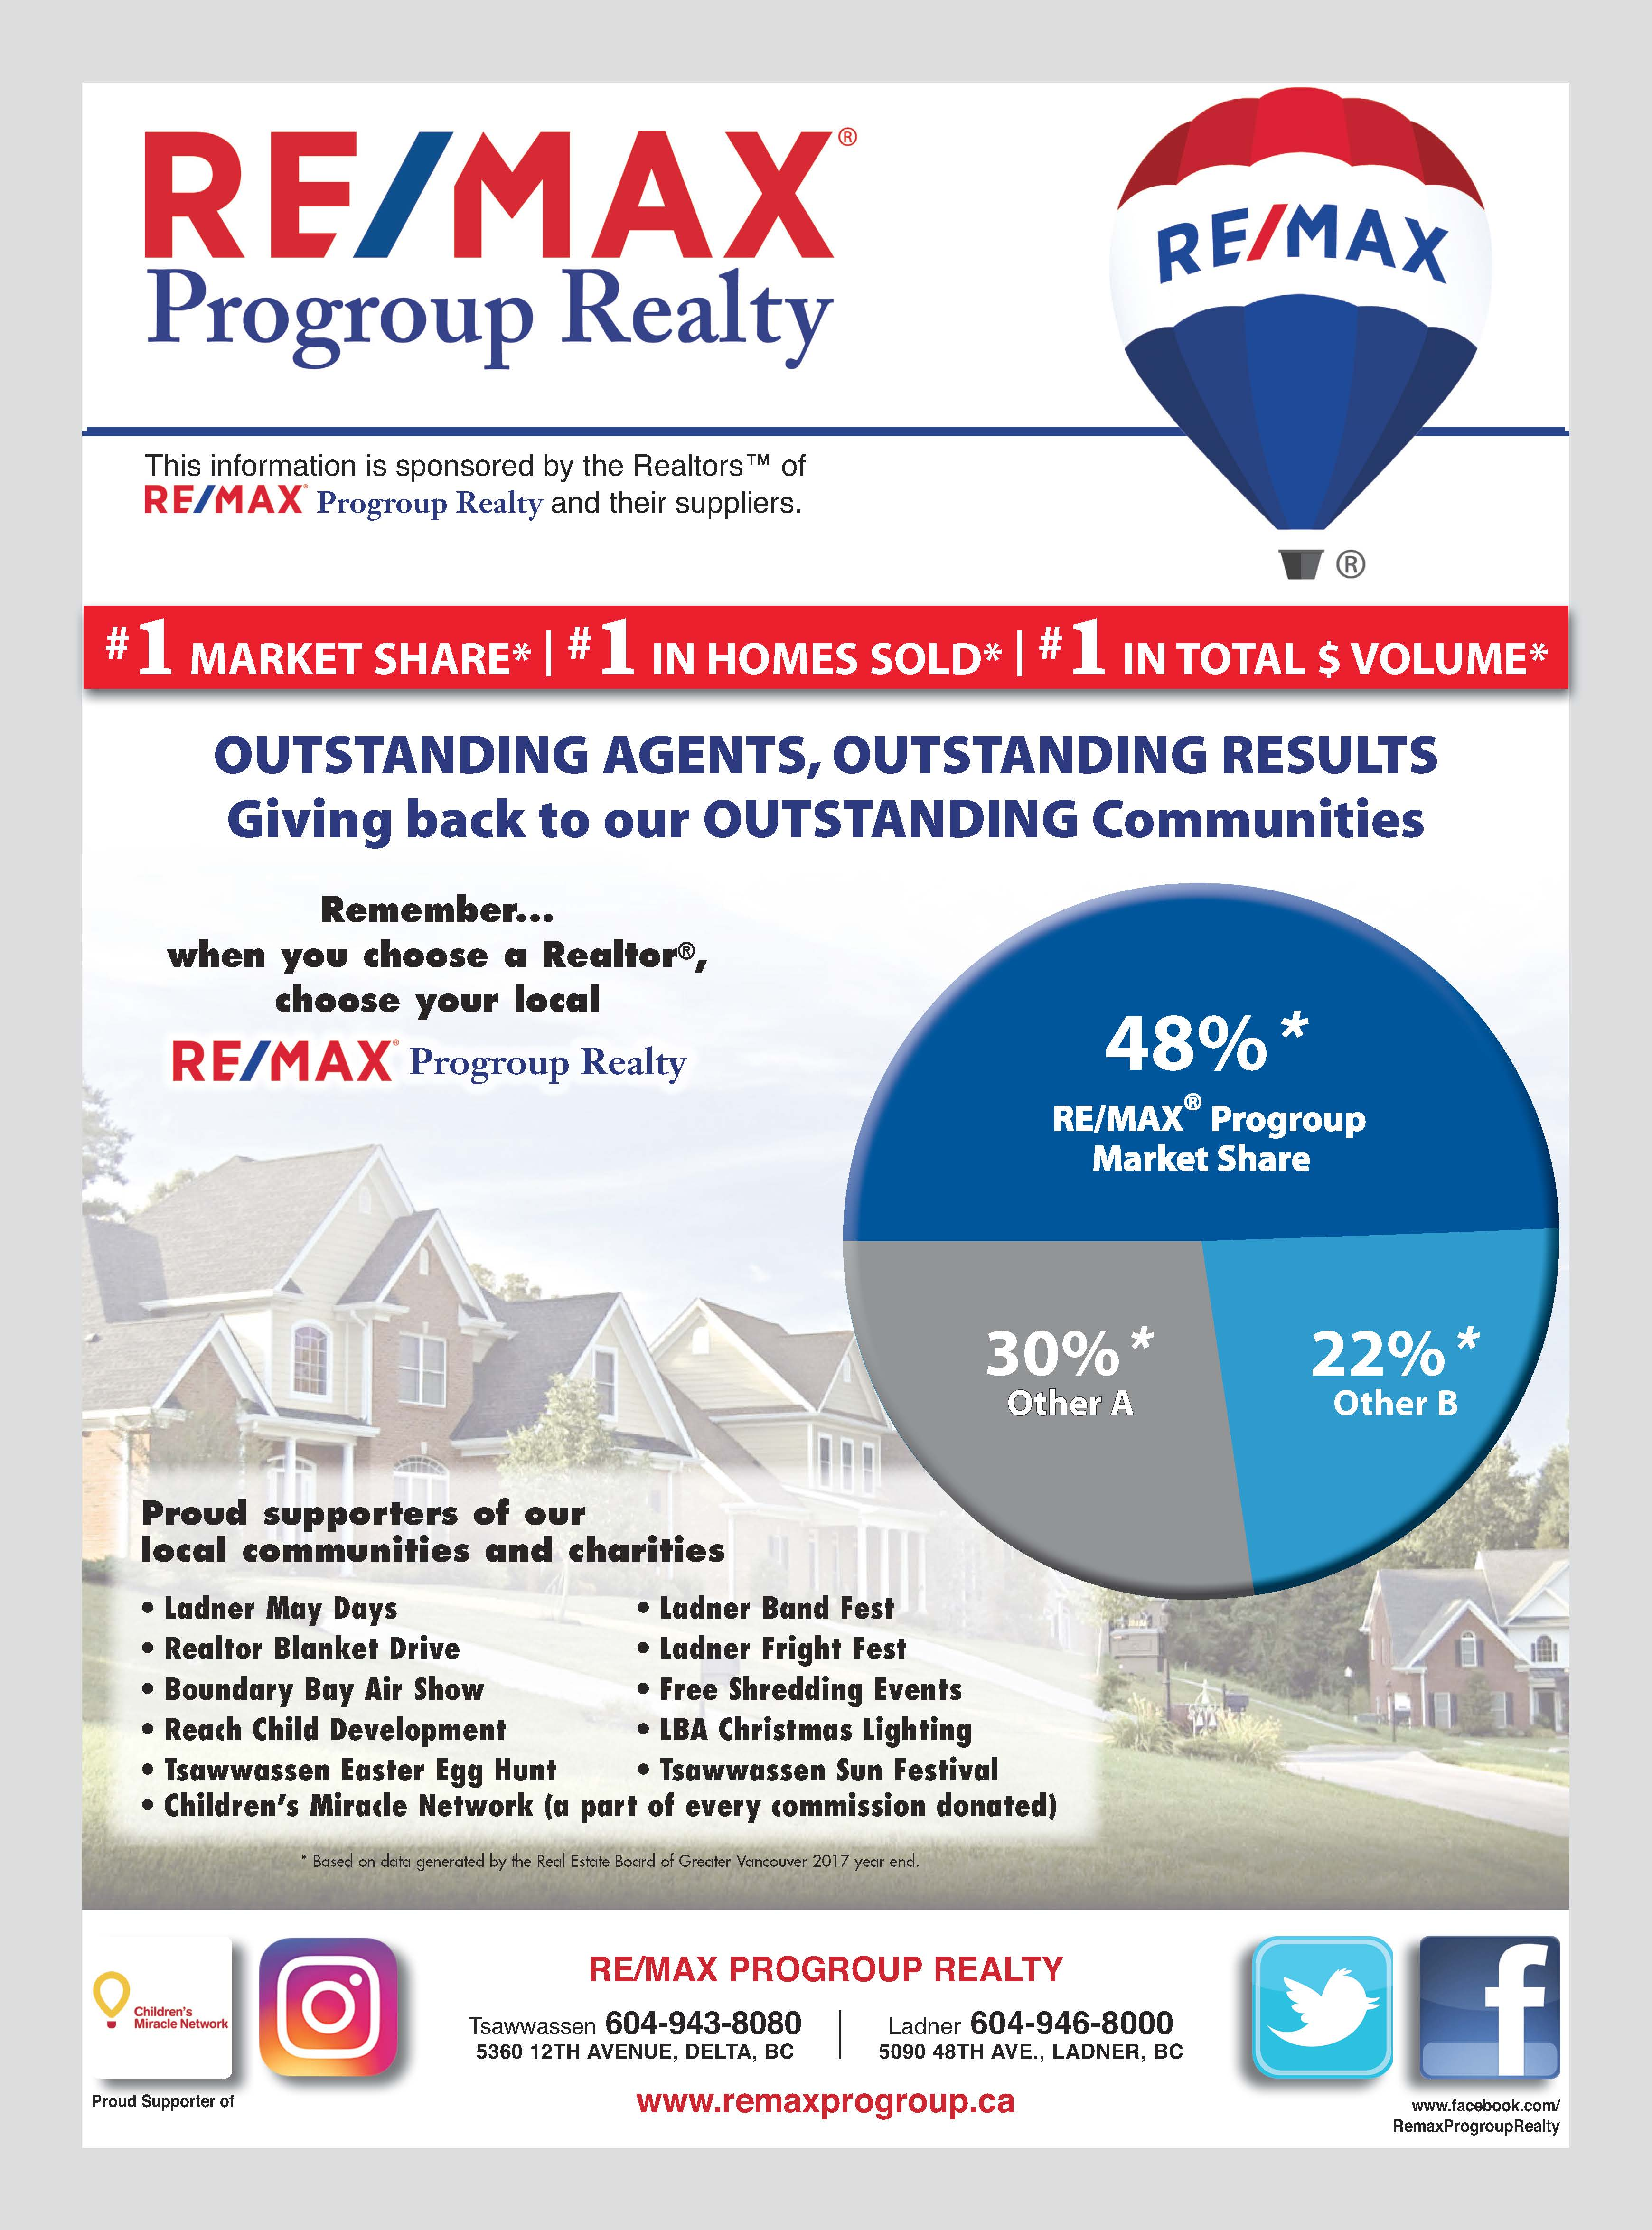 remax progroup market share 2018 pie chart